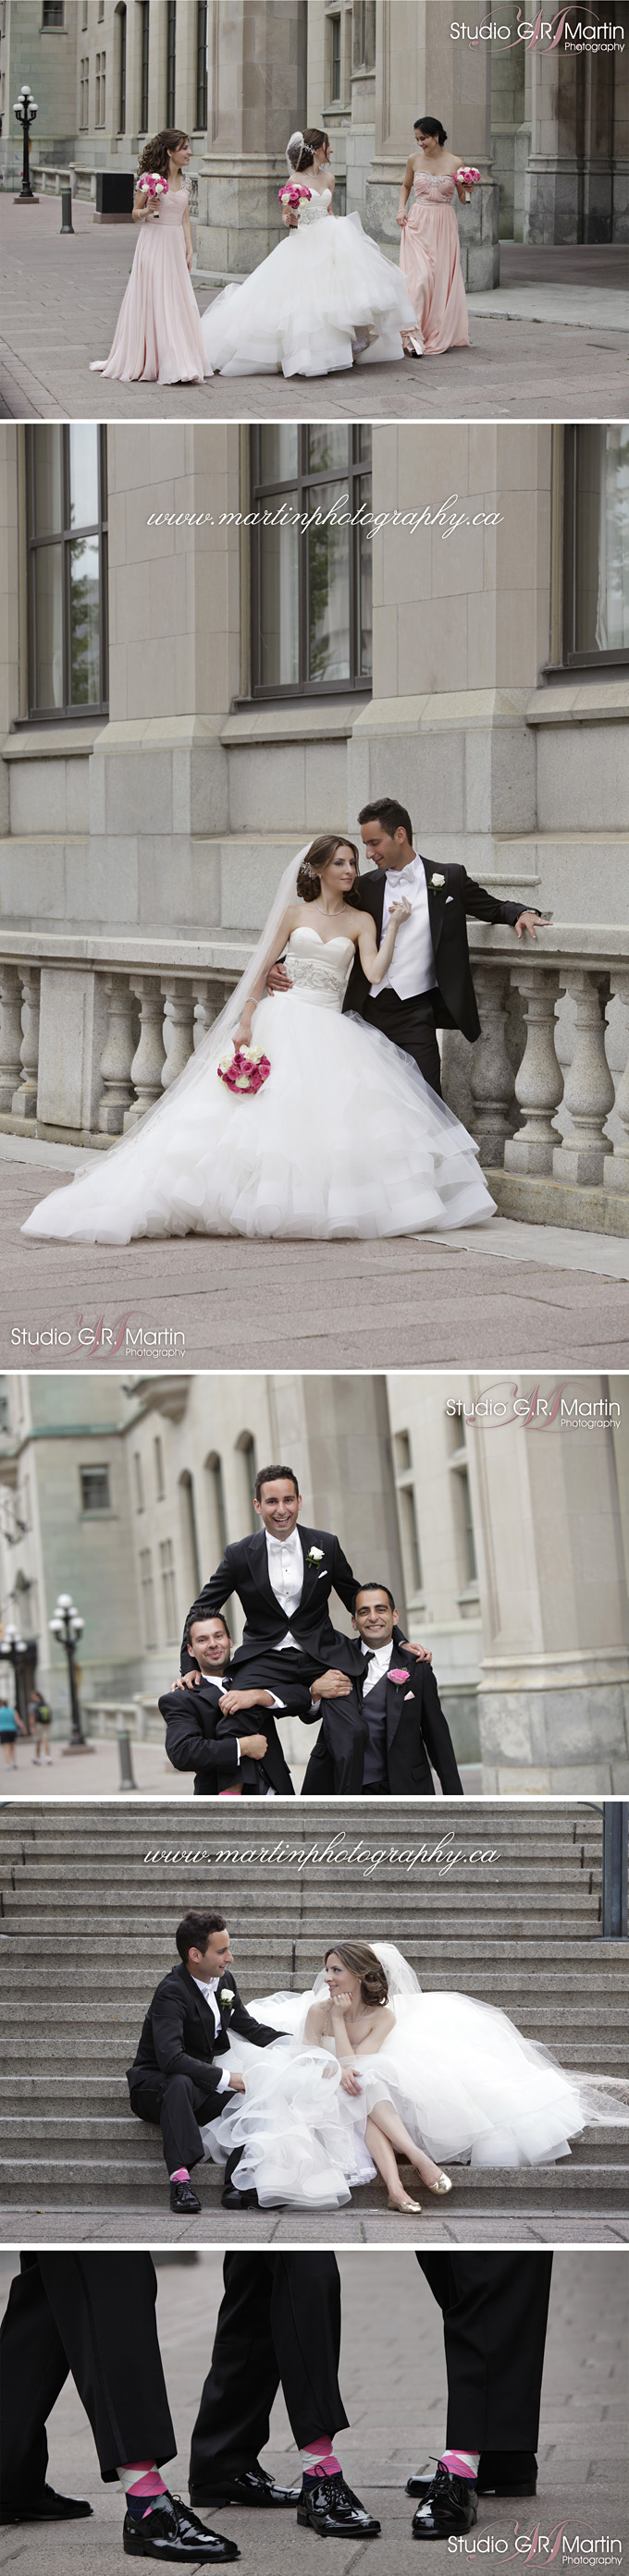 Ottawa wedding photographers - chateau Laurier wedding, Byward Market, Lebanese Ottawa wedding